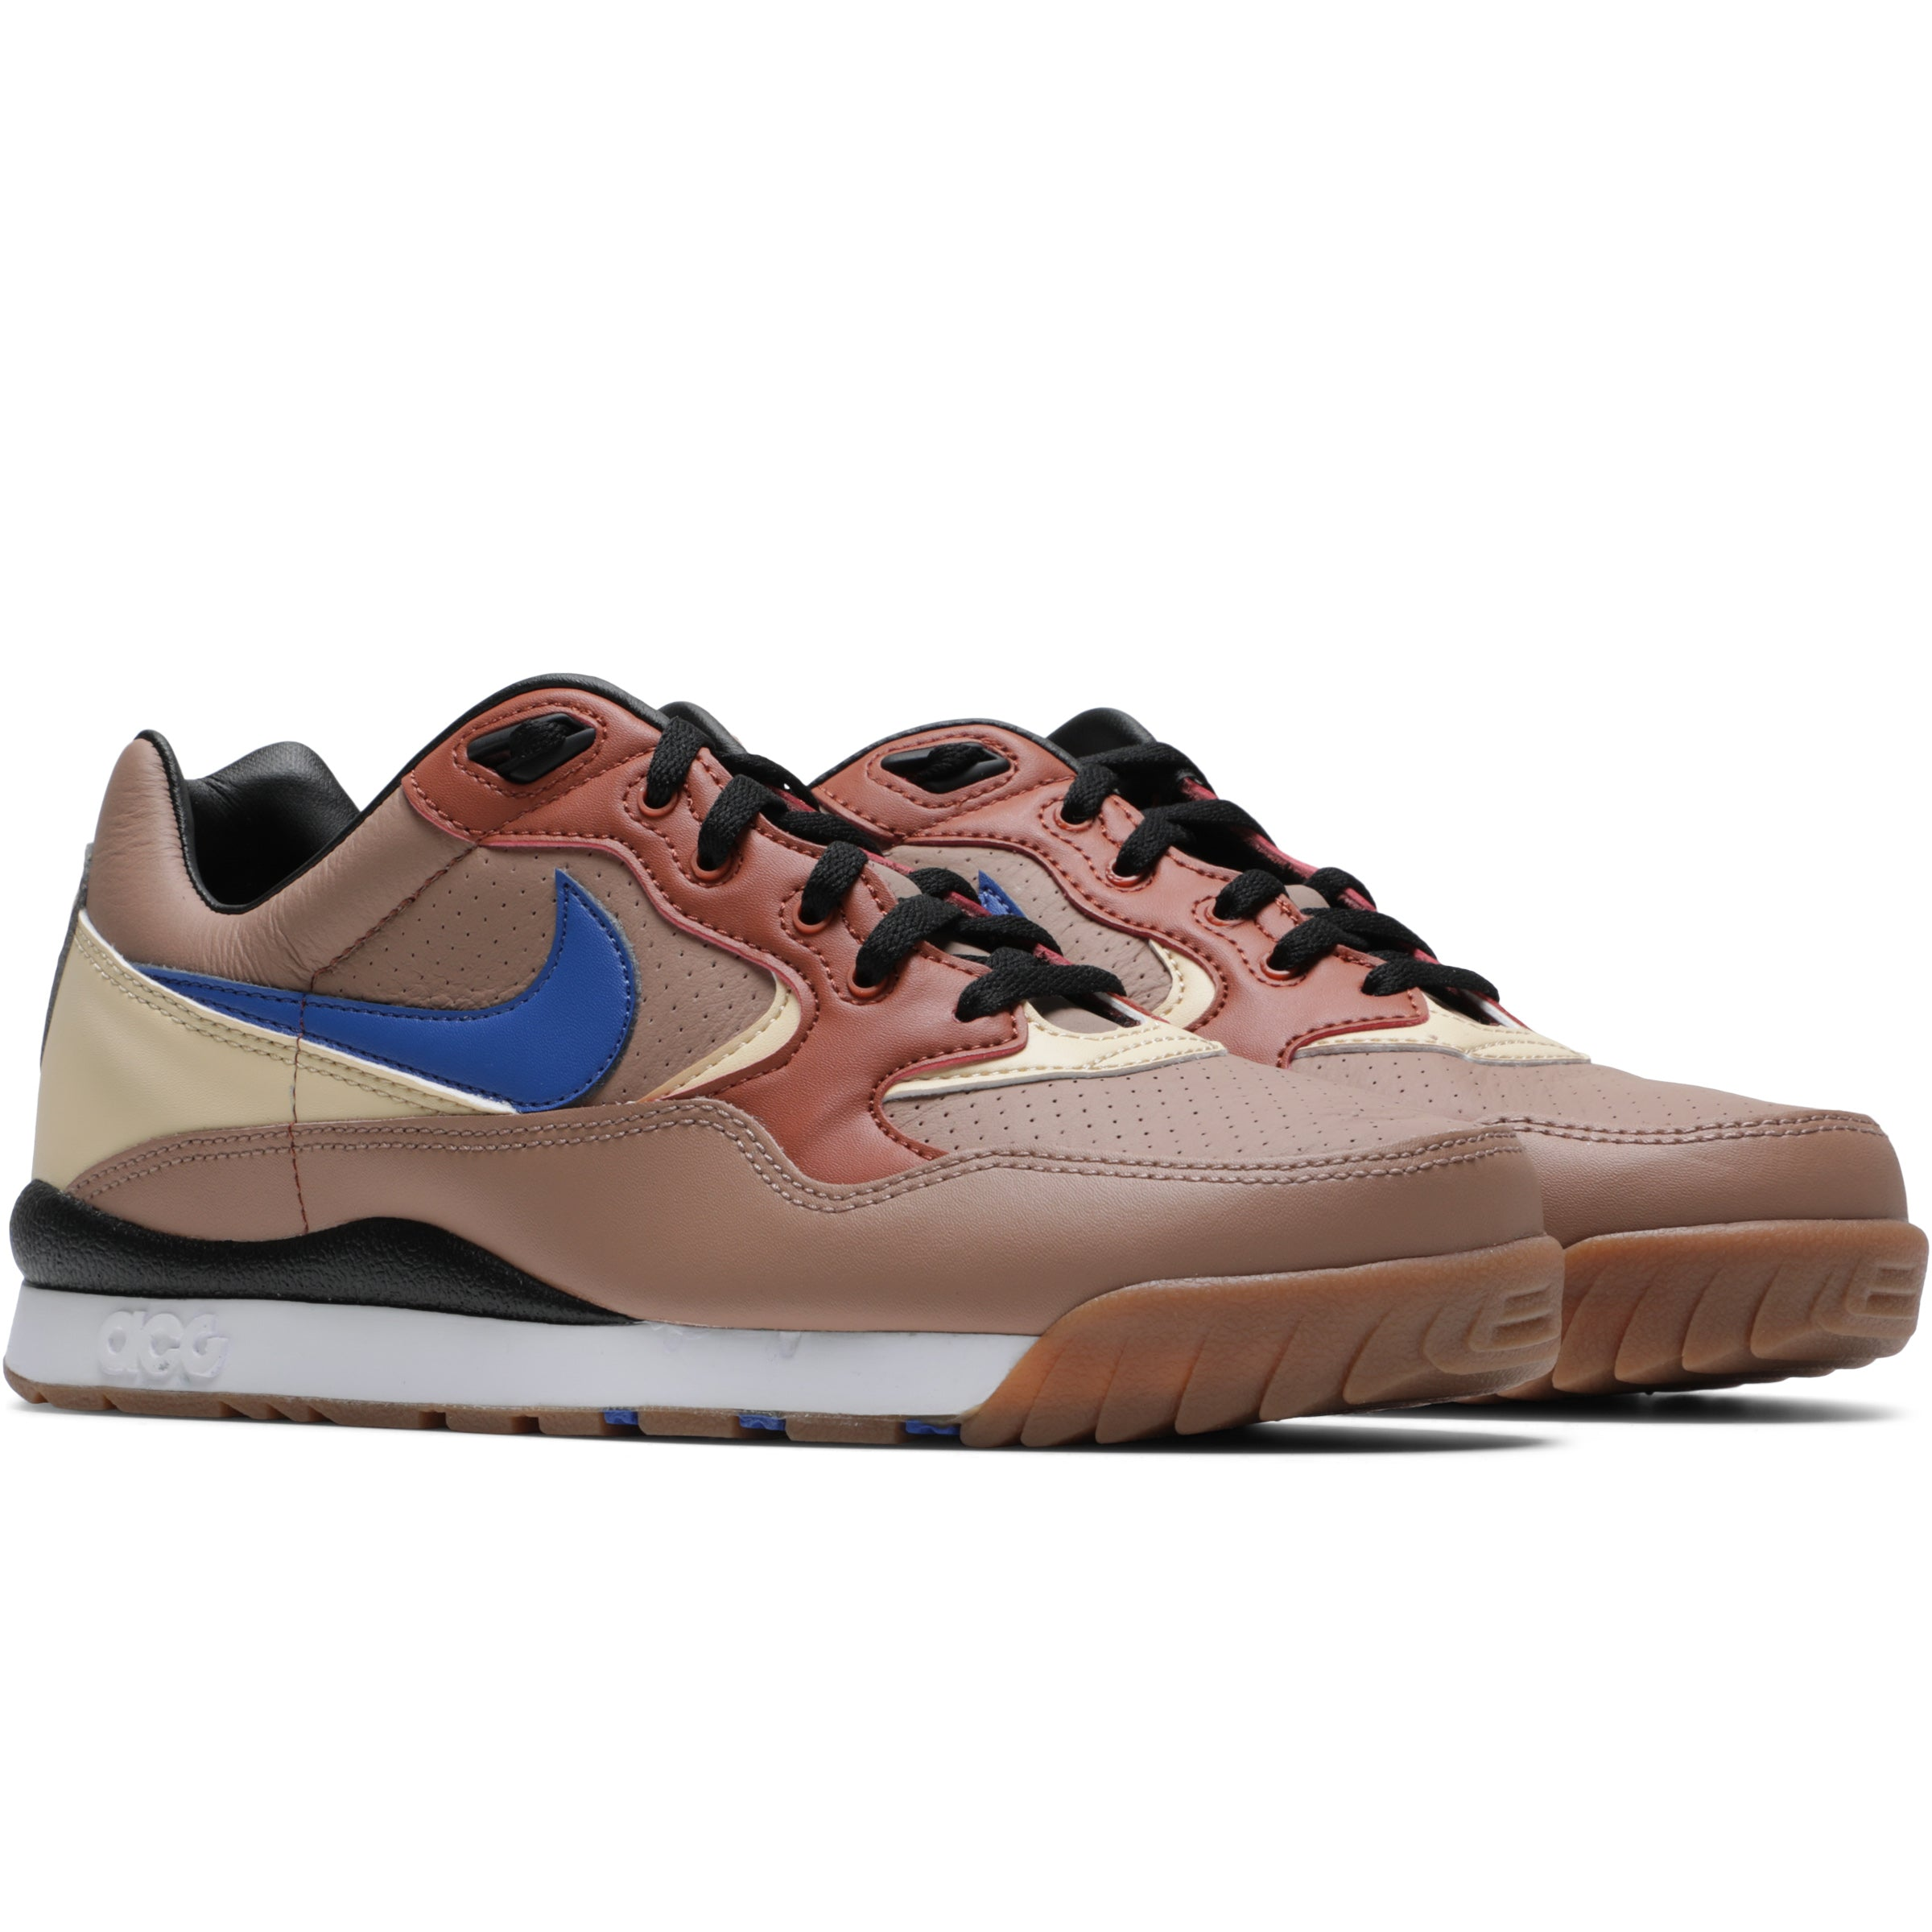 hot sale online c4be6 185d2 Nike Air WIildwood ACG DESERT DUST GAME ROYAL-DUSTY PEACH AO3116-200.  Retail   110